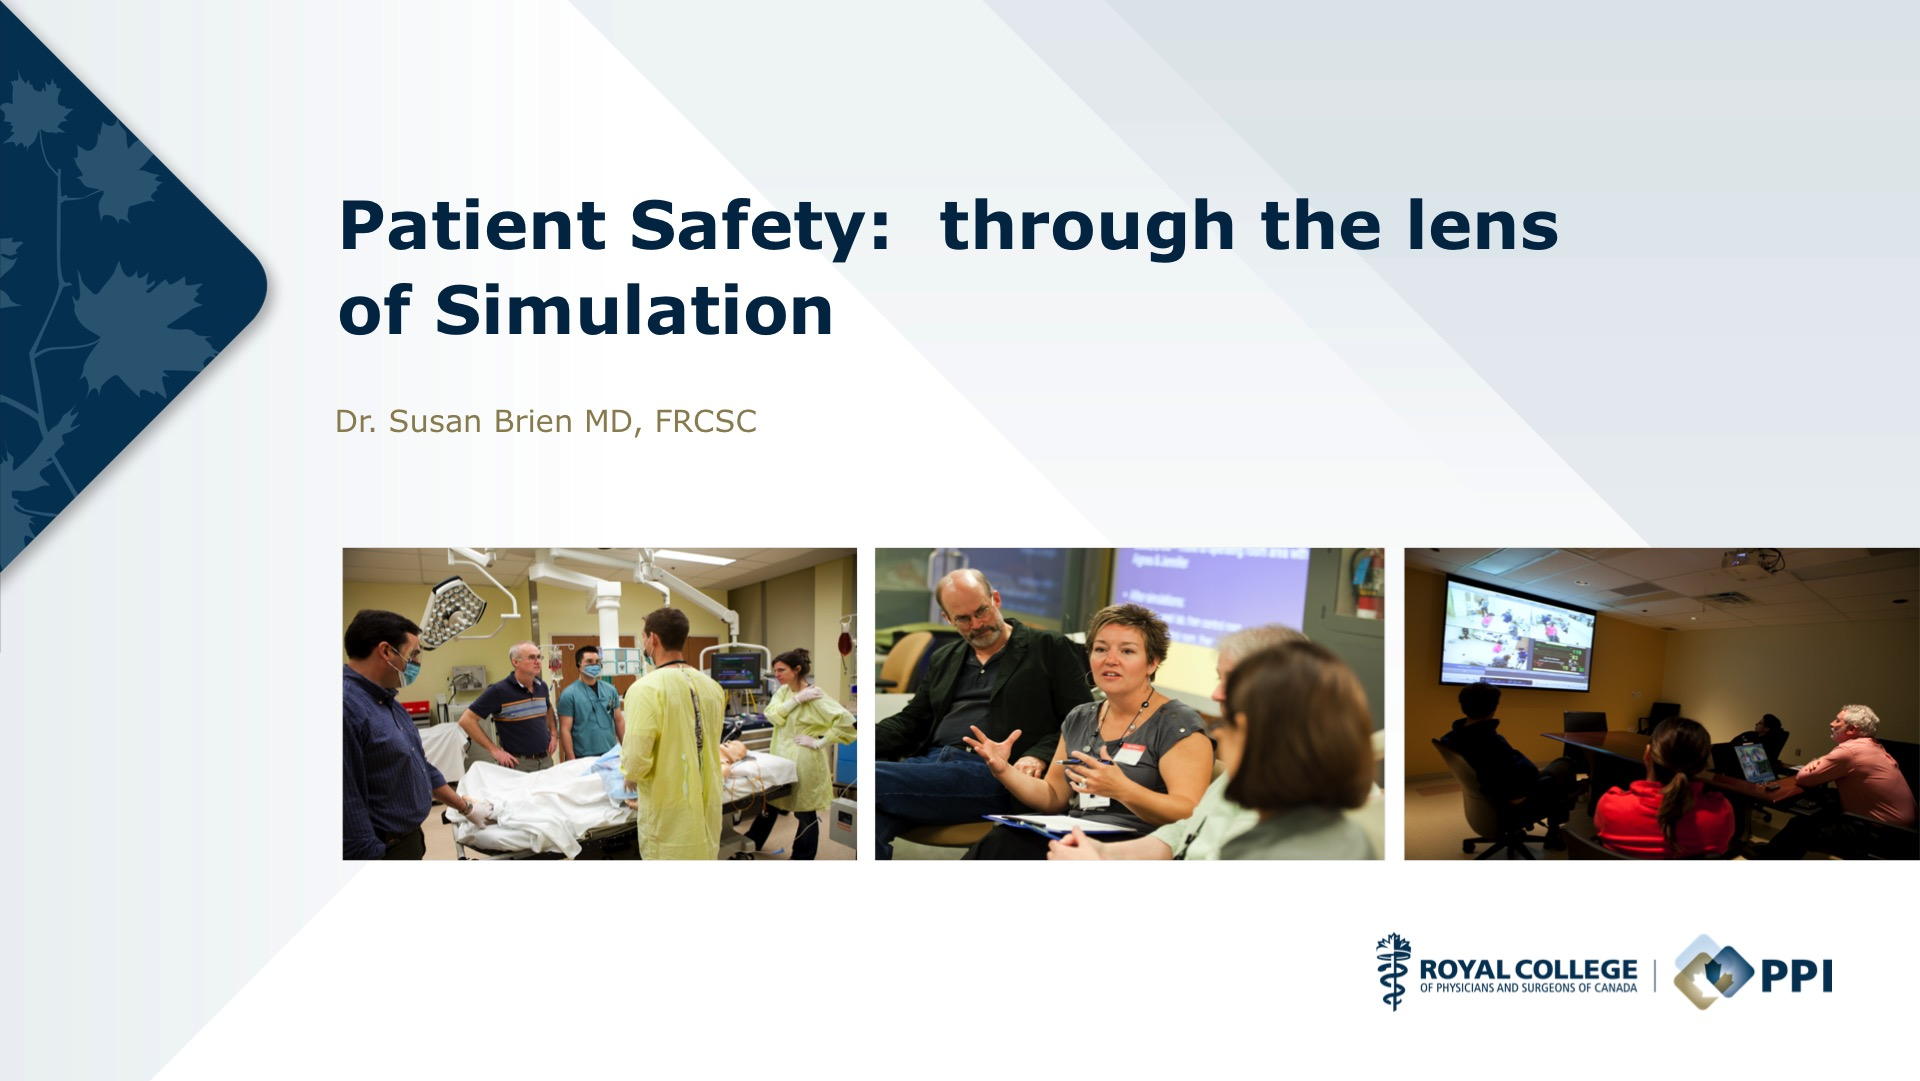 Patient Safety through the lens of Simulation by Dr. Susan Brien, MD, FRCSC